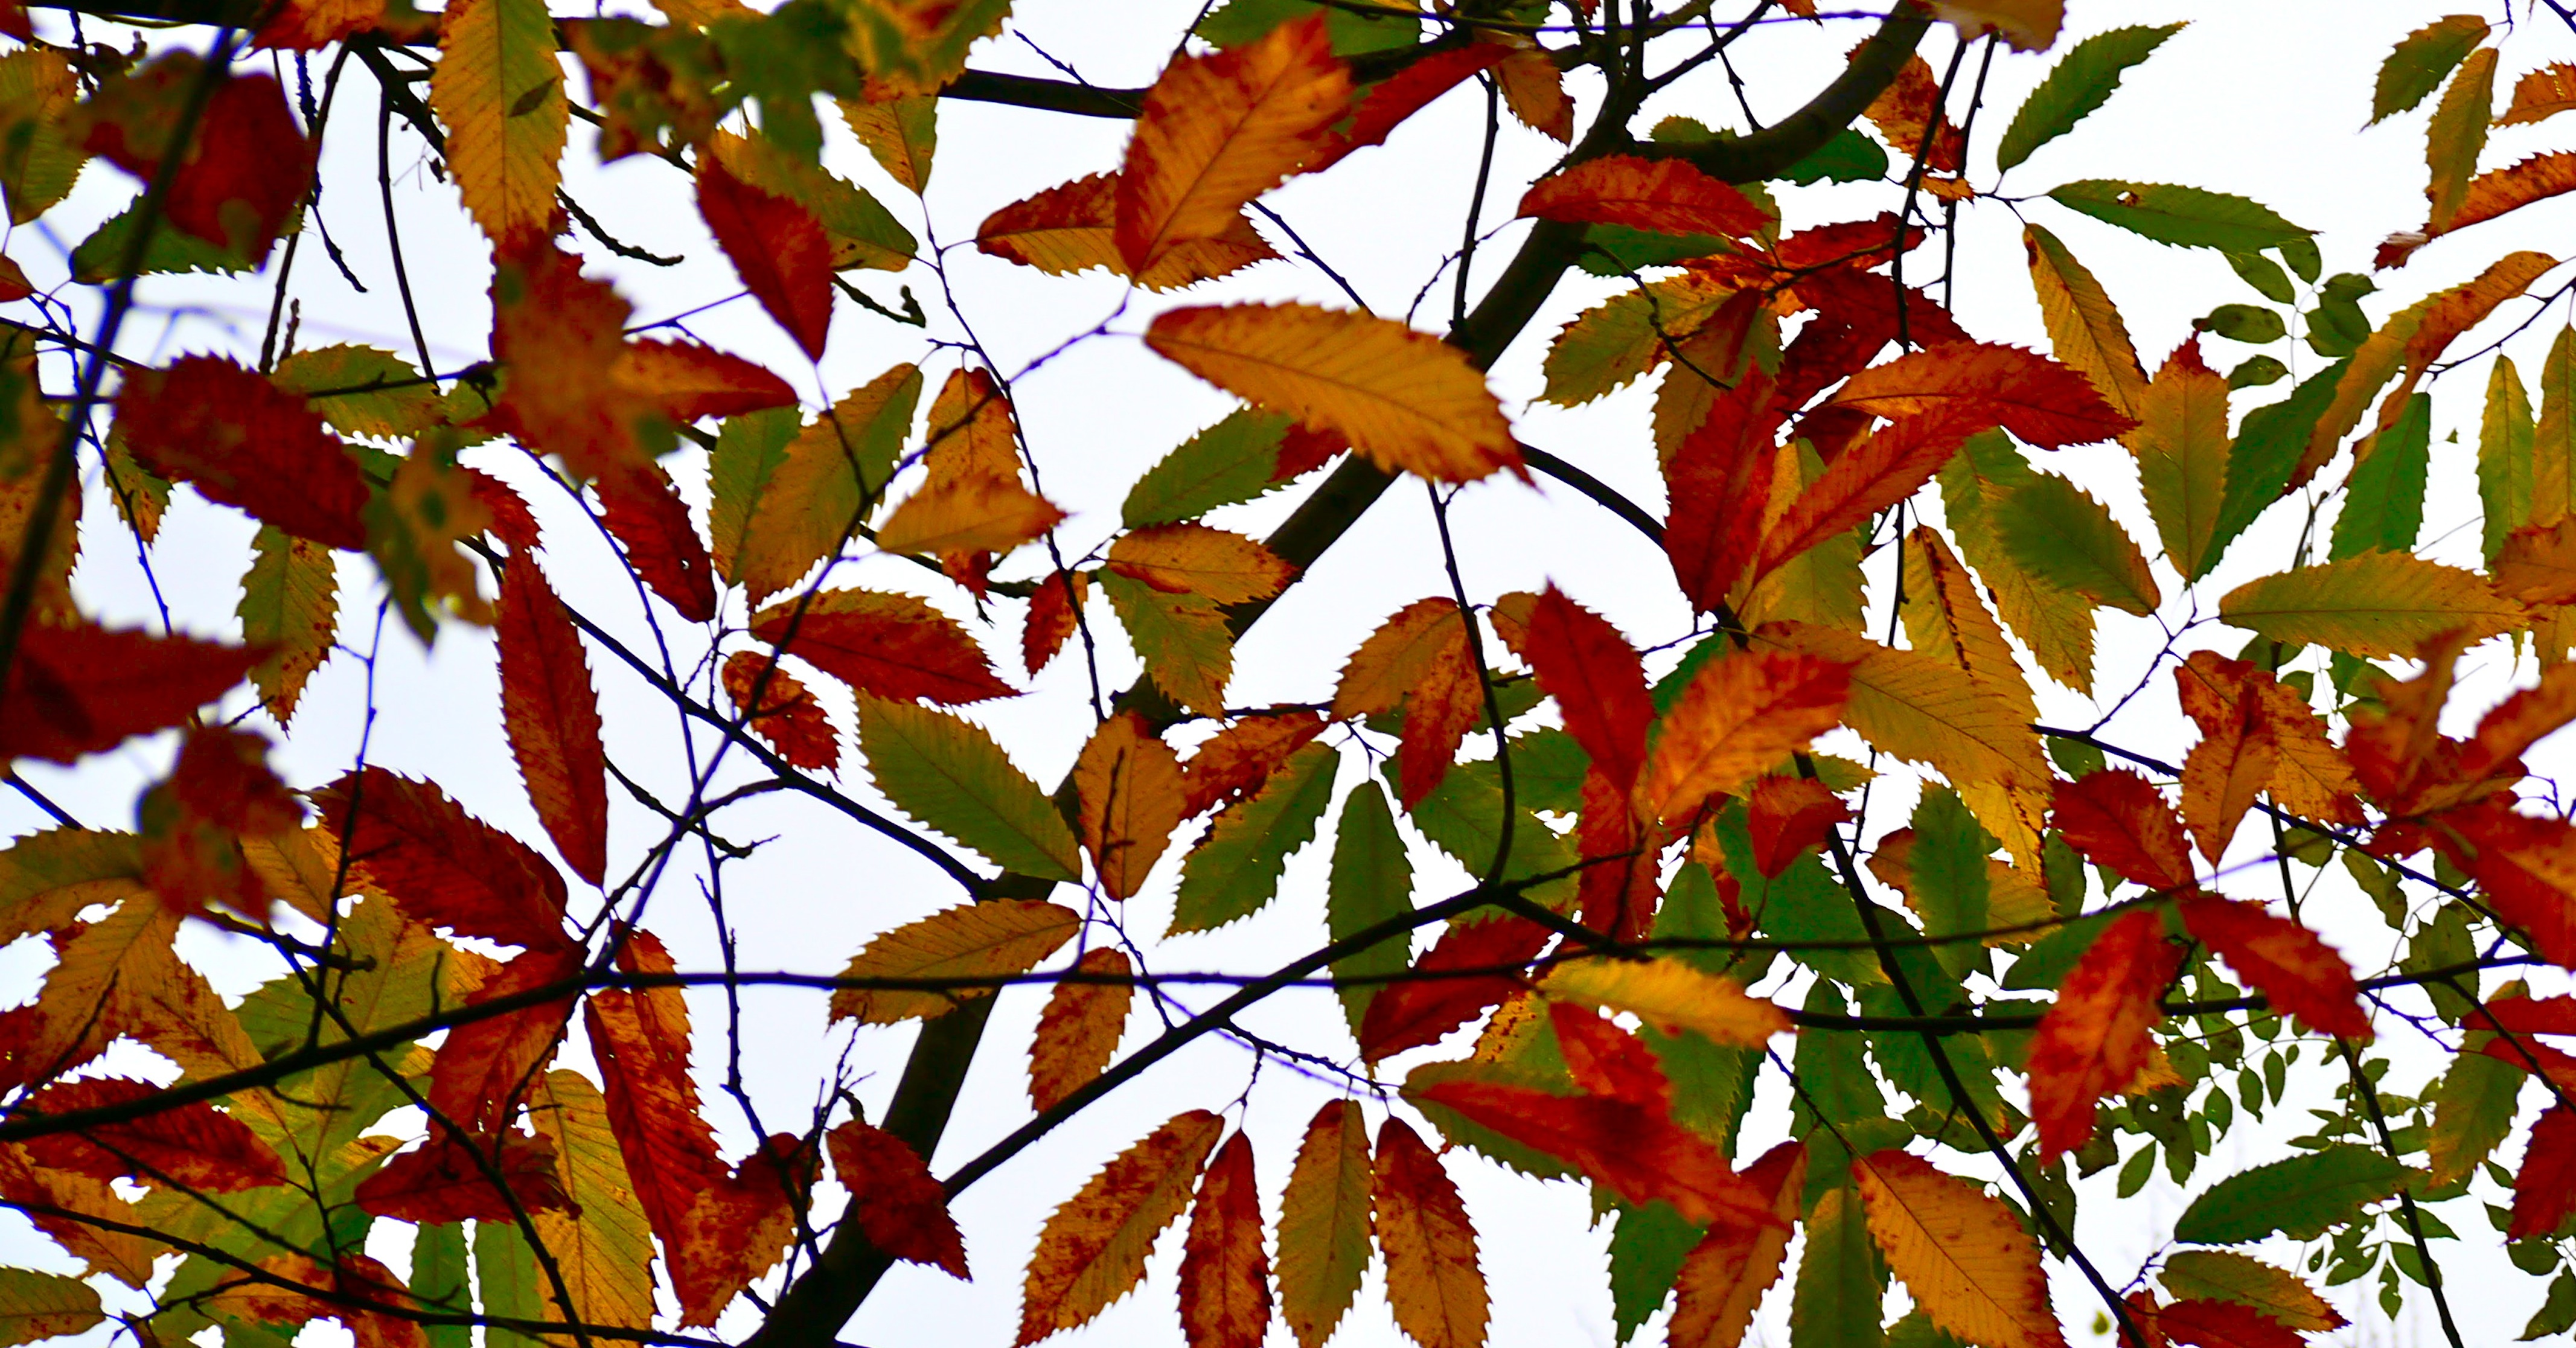 Leaves turning fiery